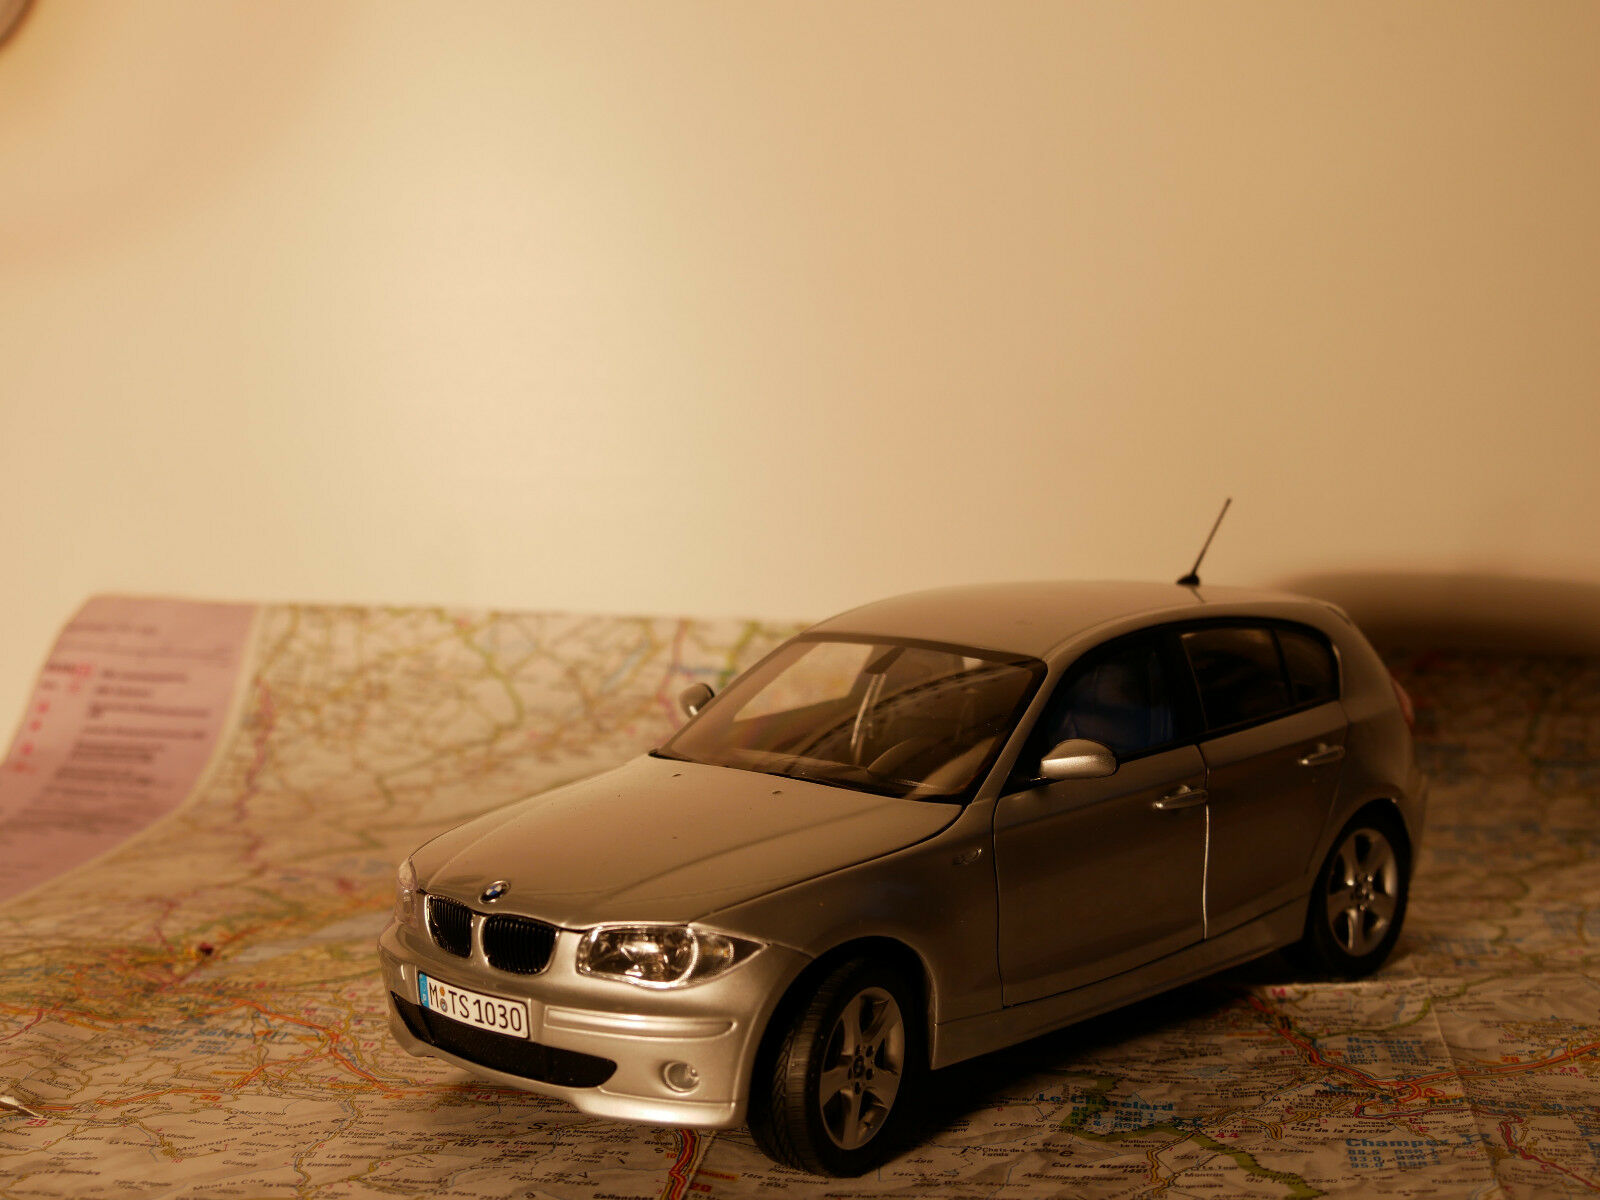 KYOSHO BMW 1-ER SILBER ART.80430308602  BWM - DEALER- VERSION + BOX  1:18  NEW